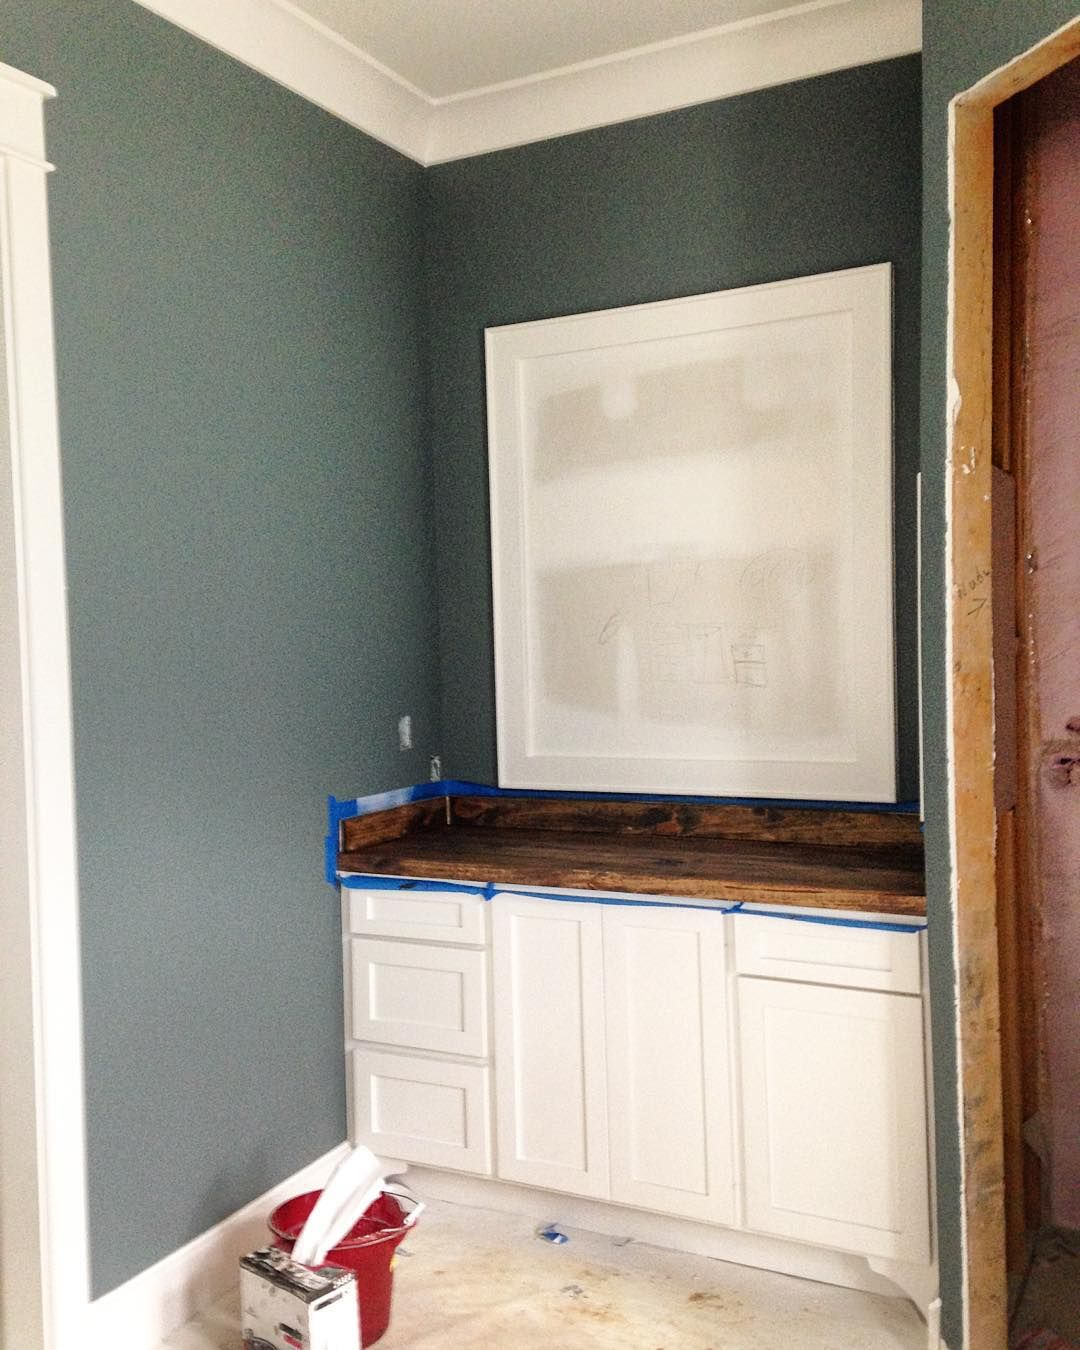 Best Benjamin Moore Gray For Accent Wall: Wall Color Is Ben Moore Steep Cliff Gray